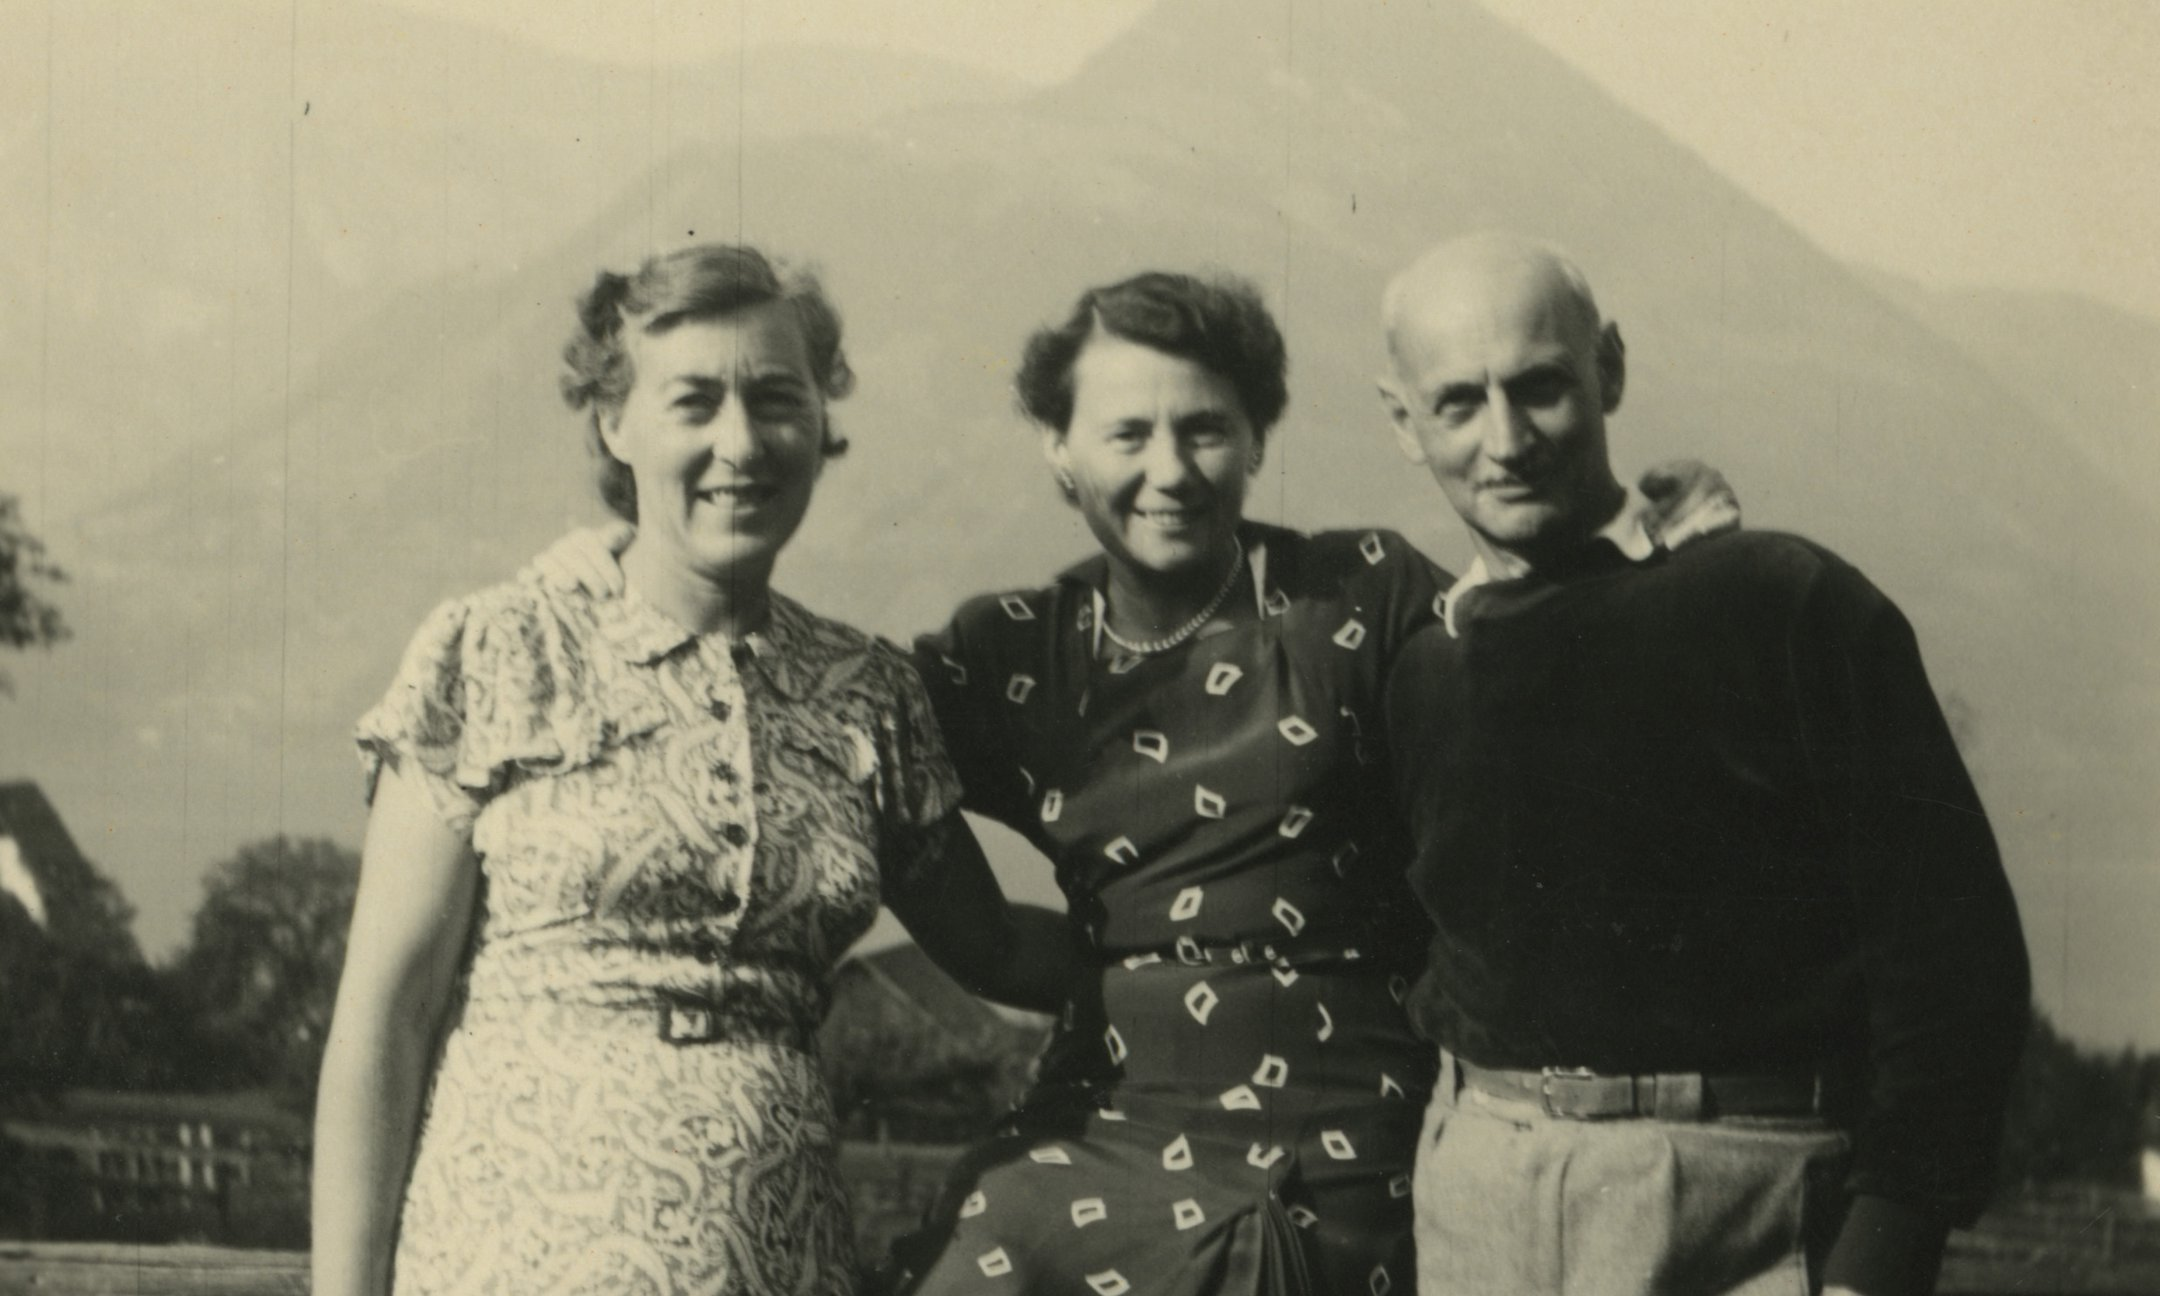 Fritzi Frank, Rosa de Winter-Levy, and Otto Frank on a mountain hike in Switzerland, around 1950.